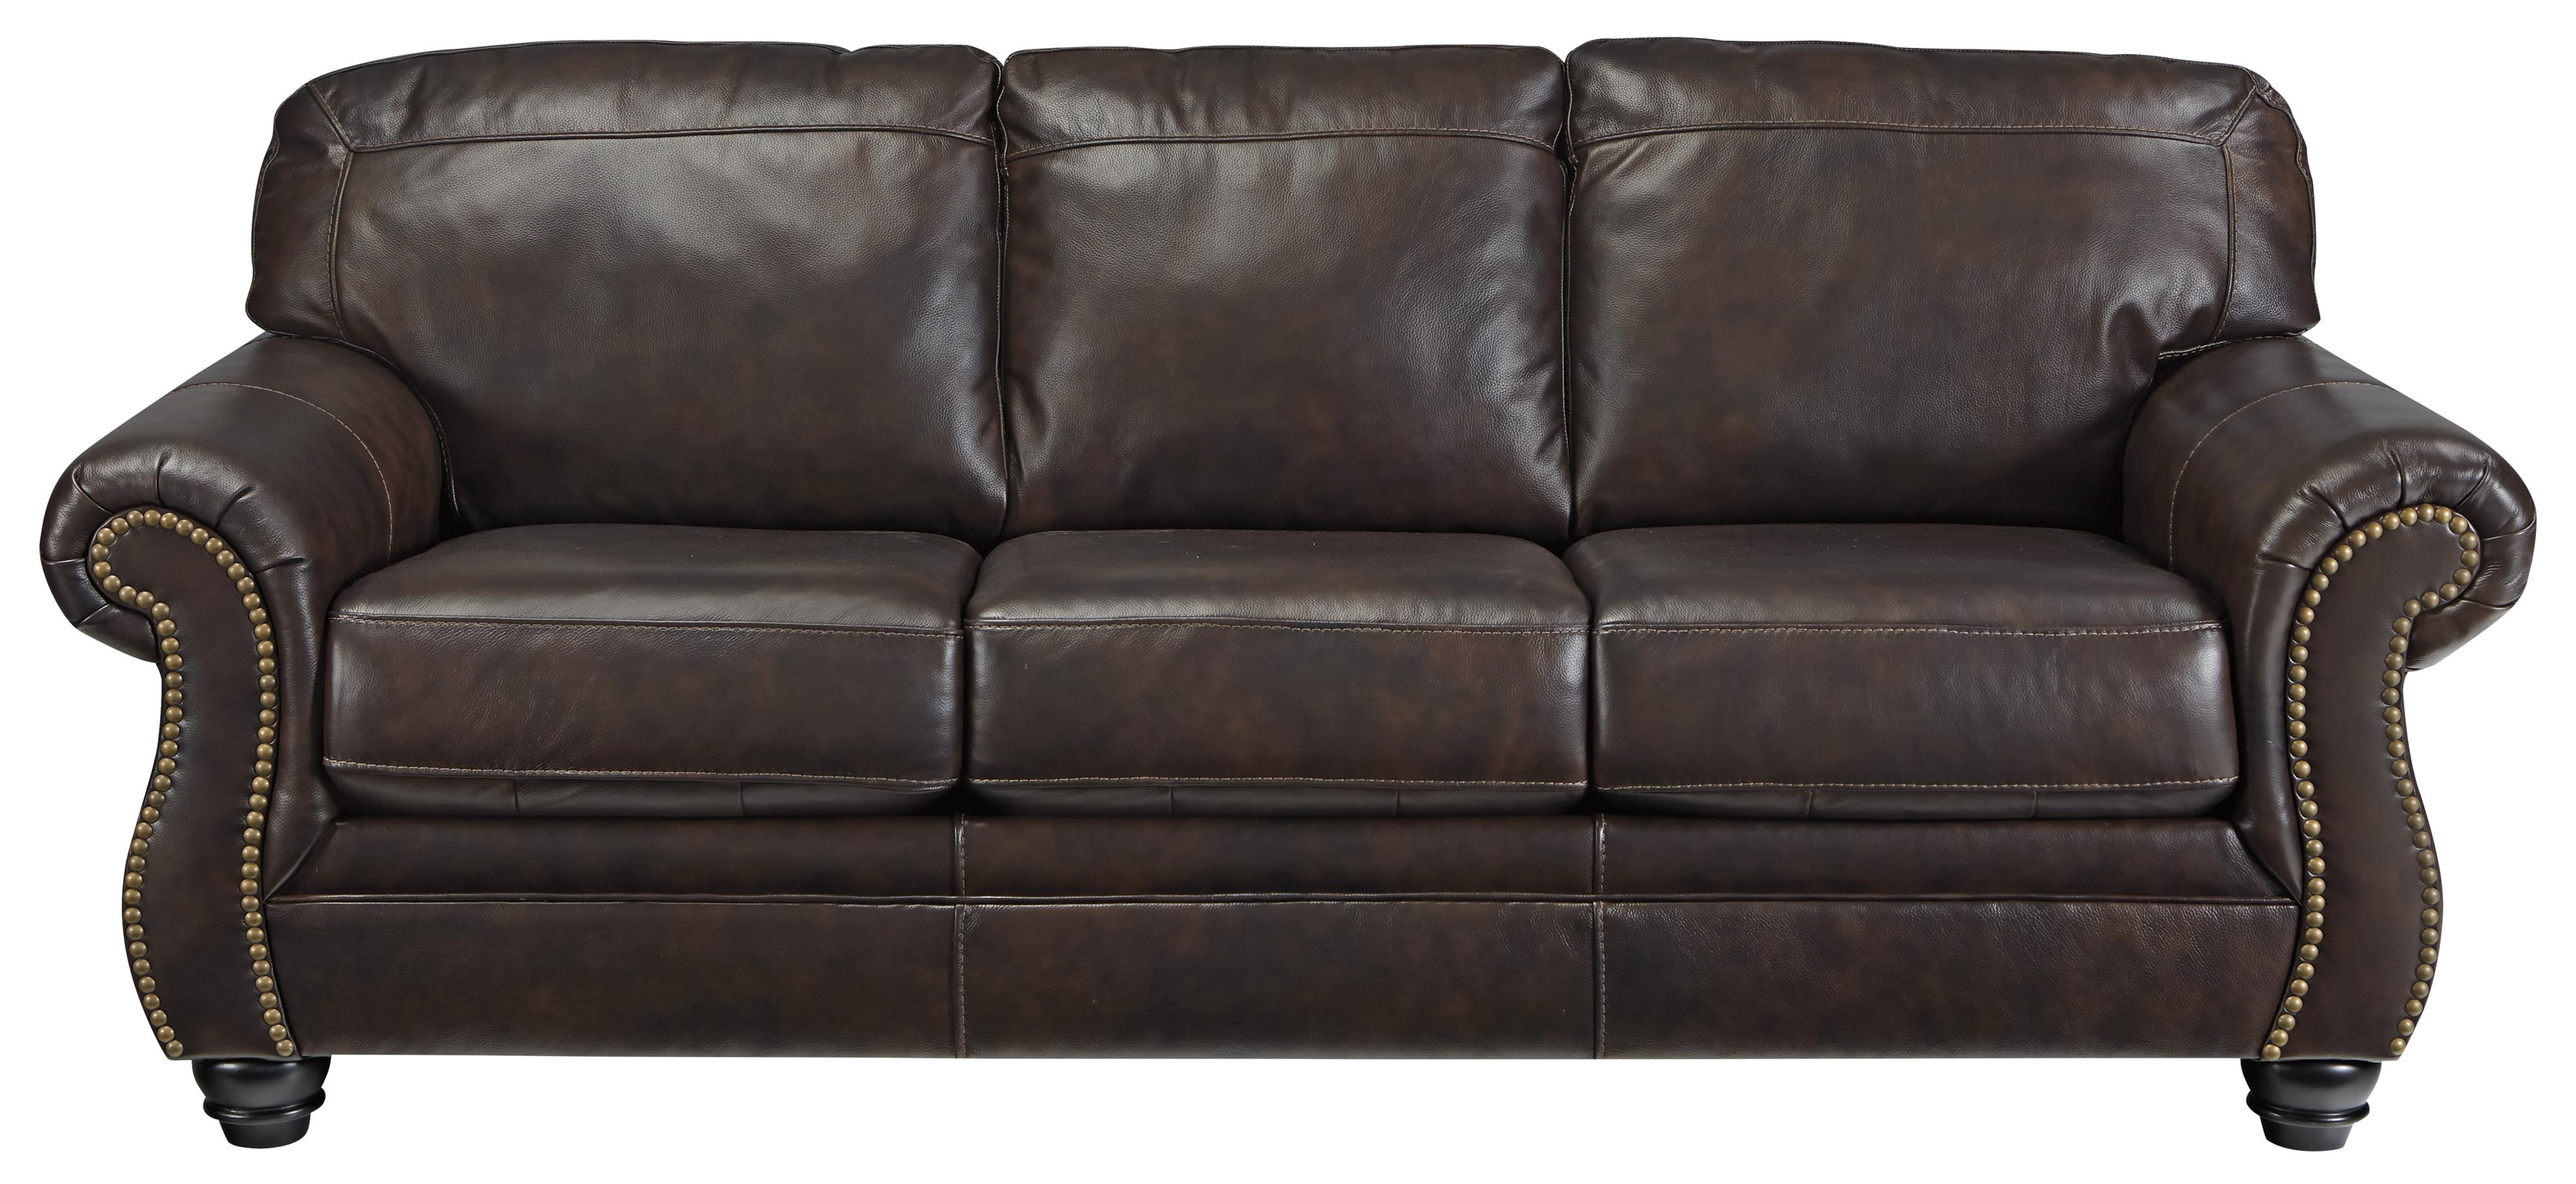 Signature Design By Ashley Bristan Queen Sofa Sleeper - Item Number: 8220239